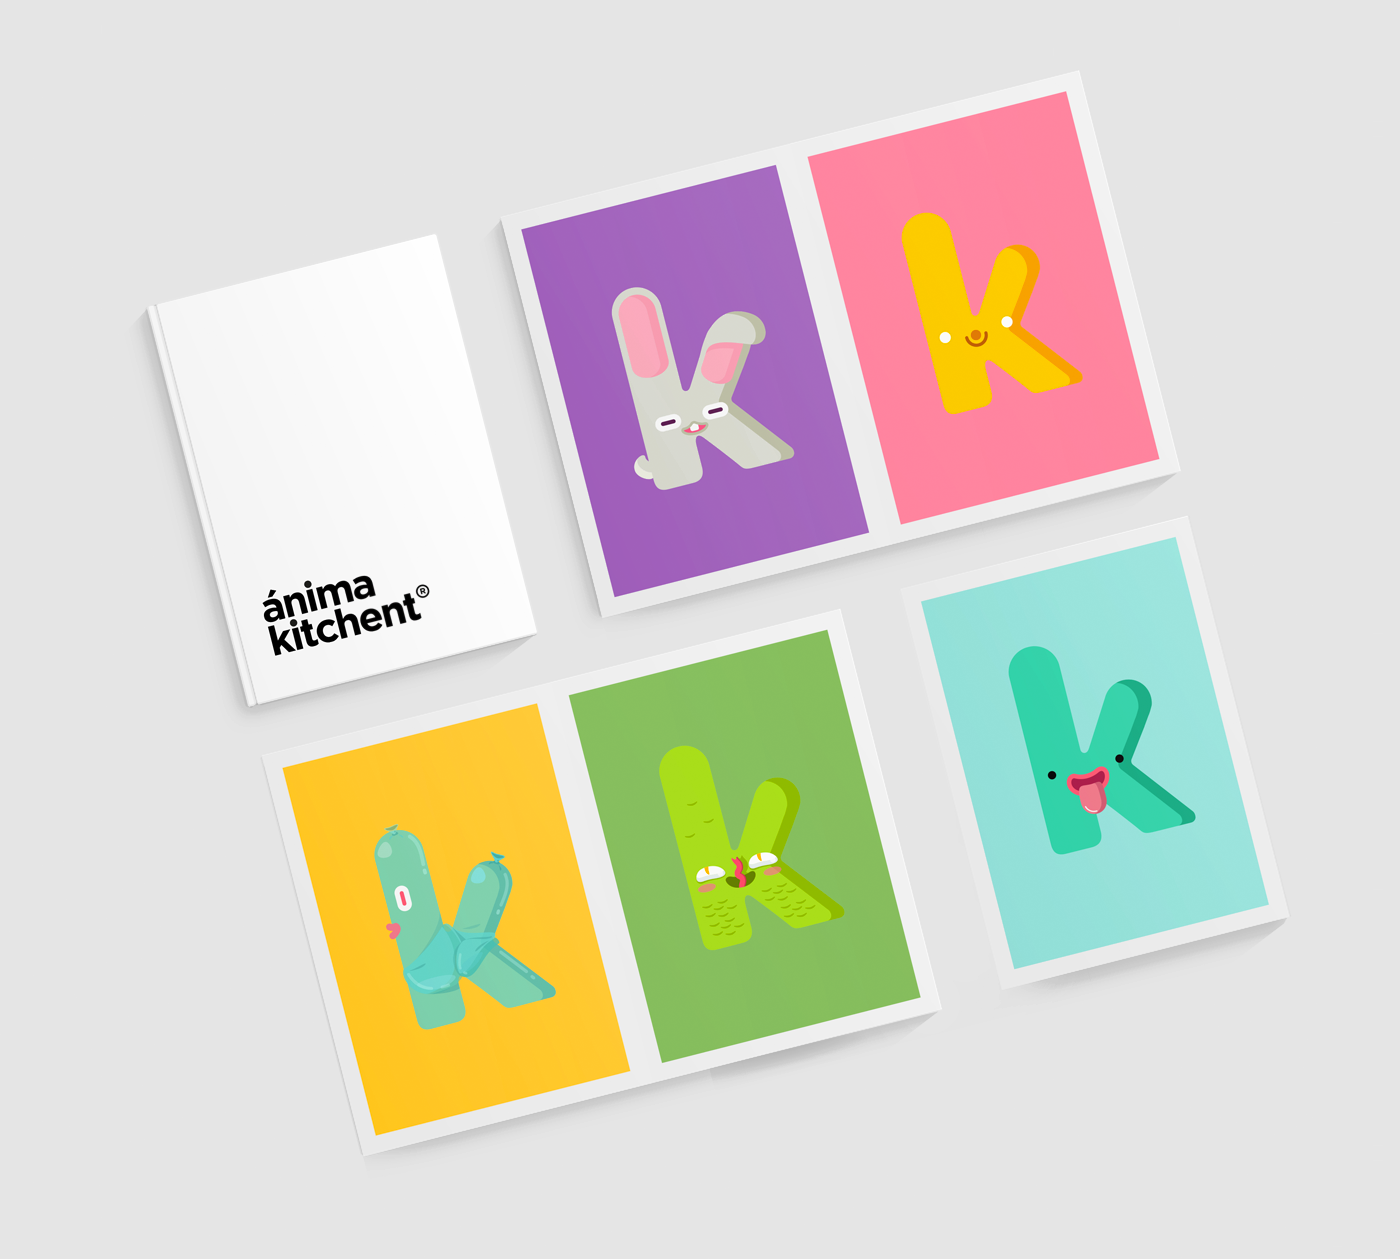 Ánima Kitchent, proyecto de Branding e Ilustración por The Woork Co